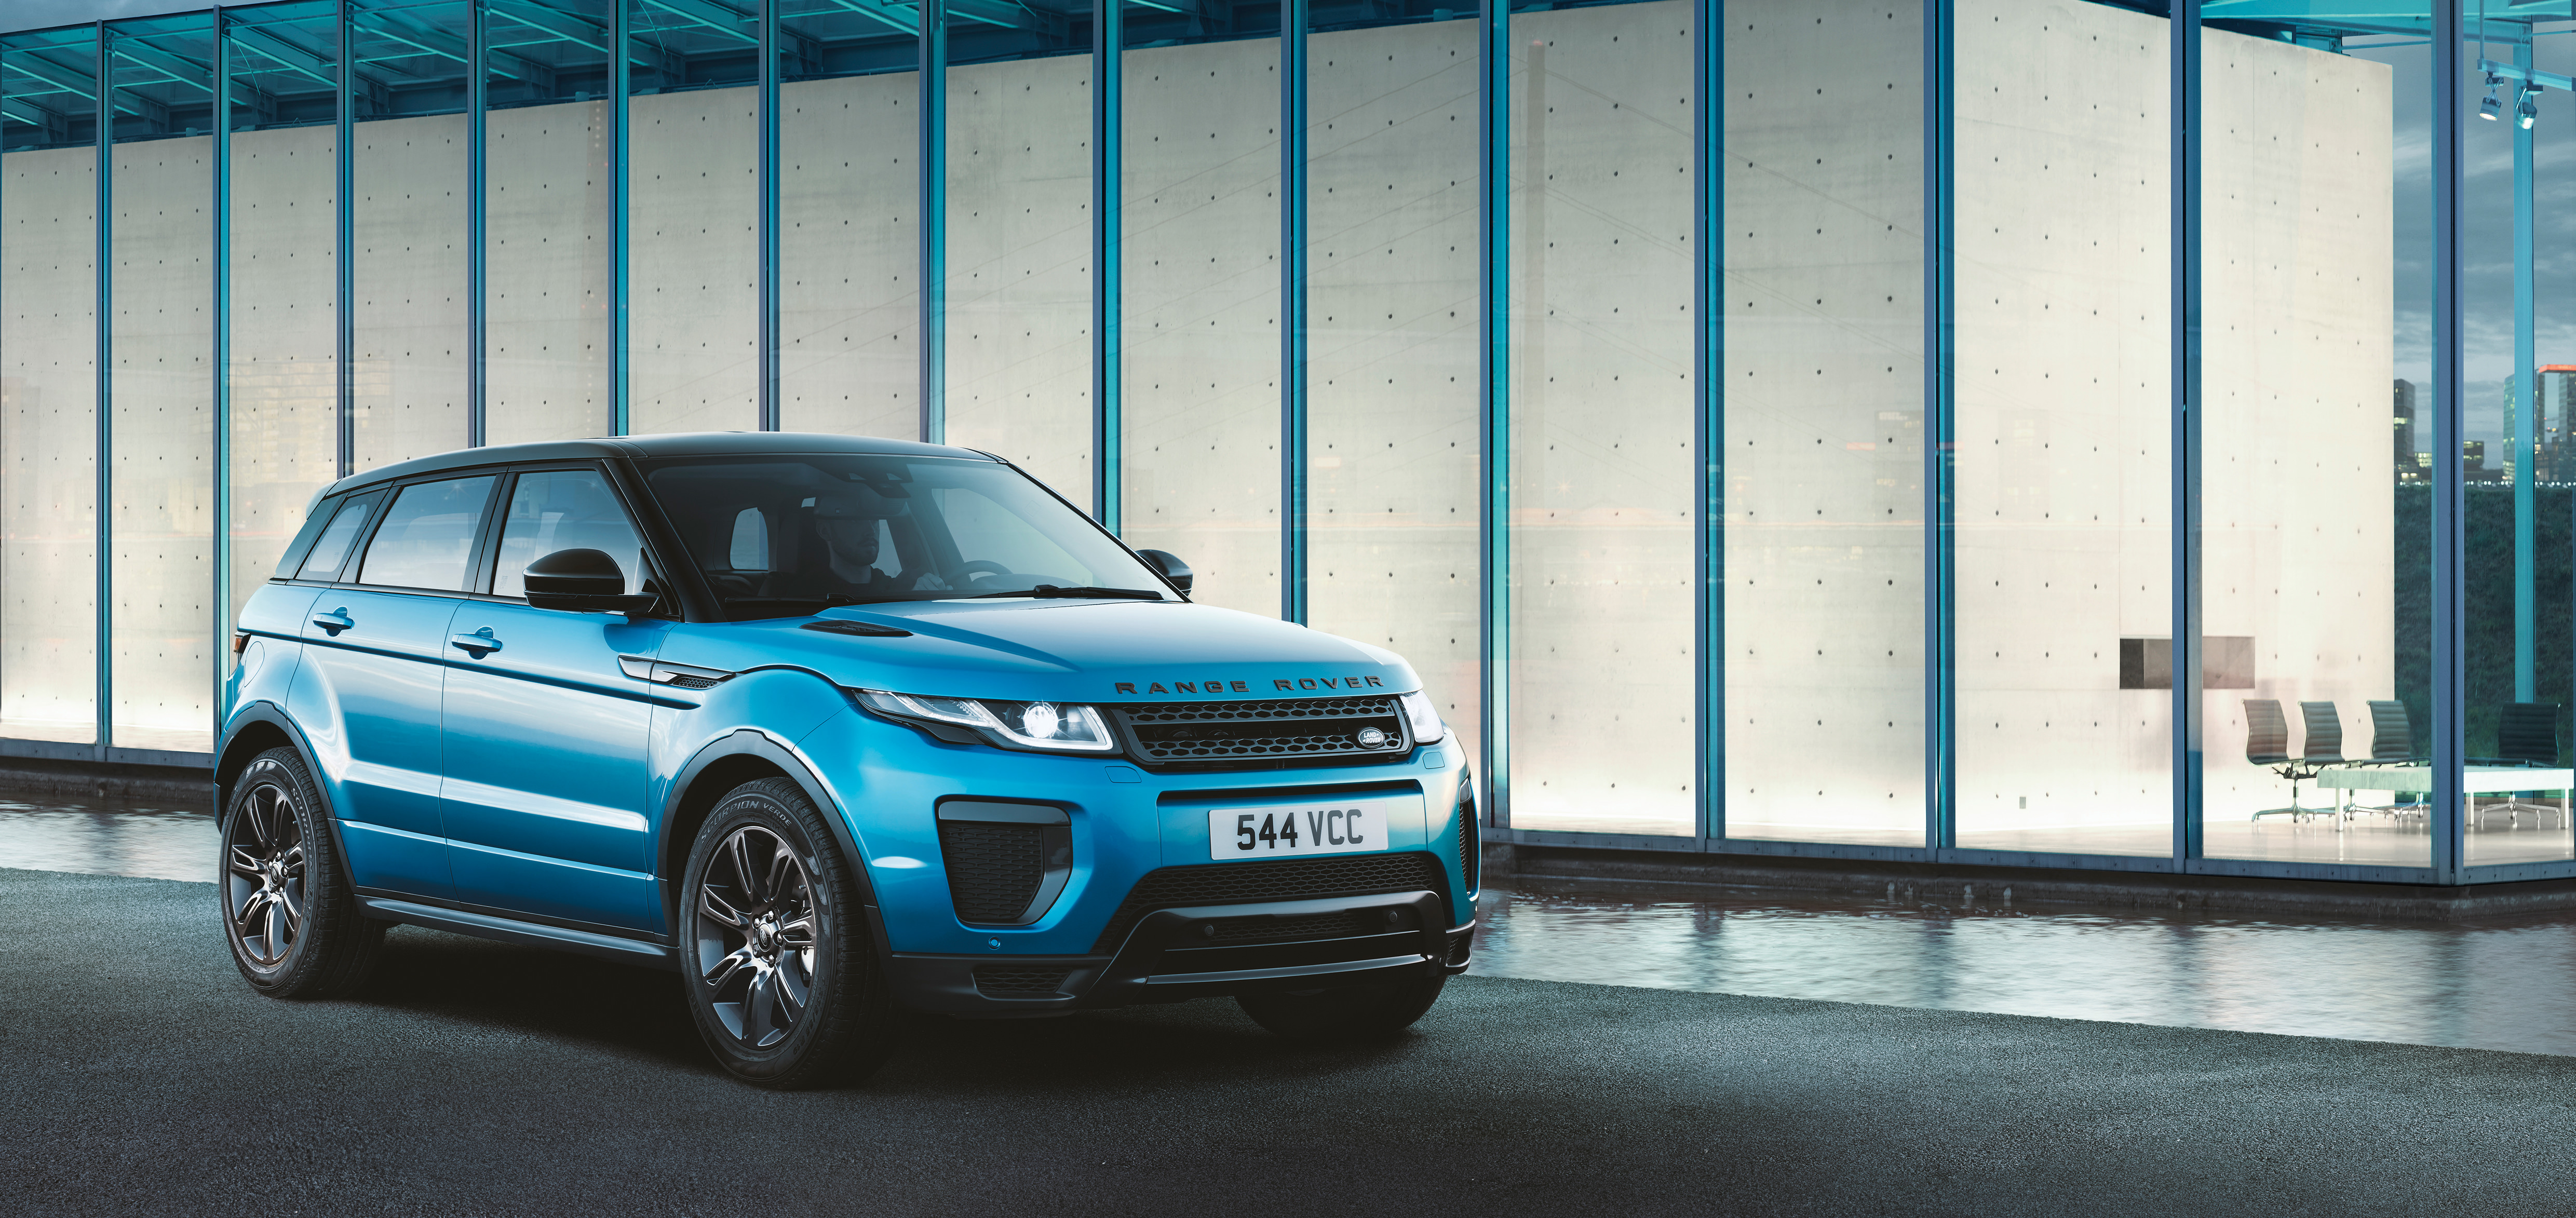 landrover luxury new cars sedan evoque lease land cheap sports zealand rover